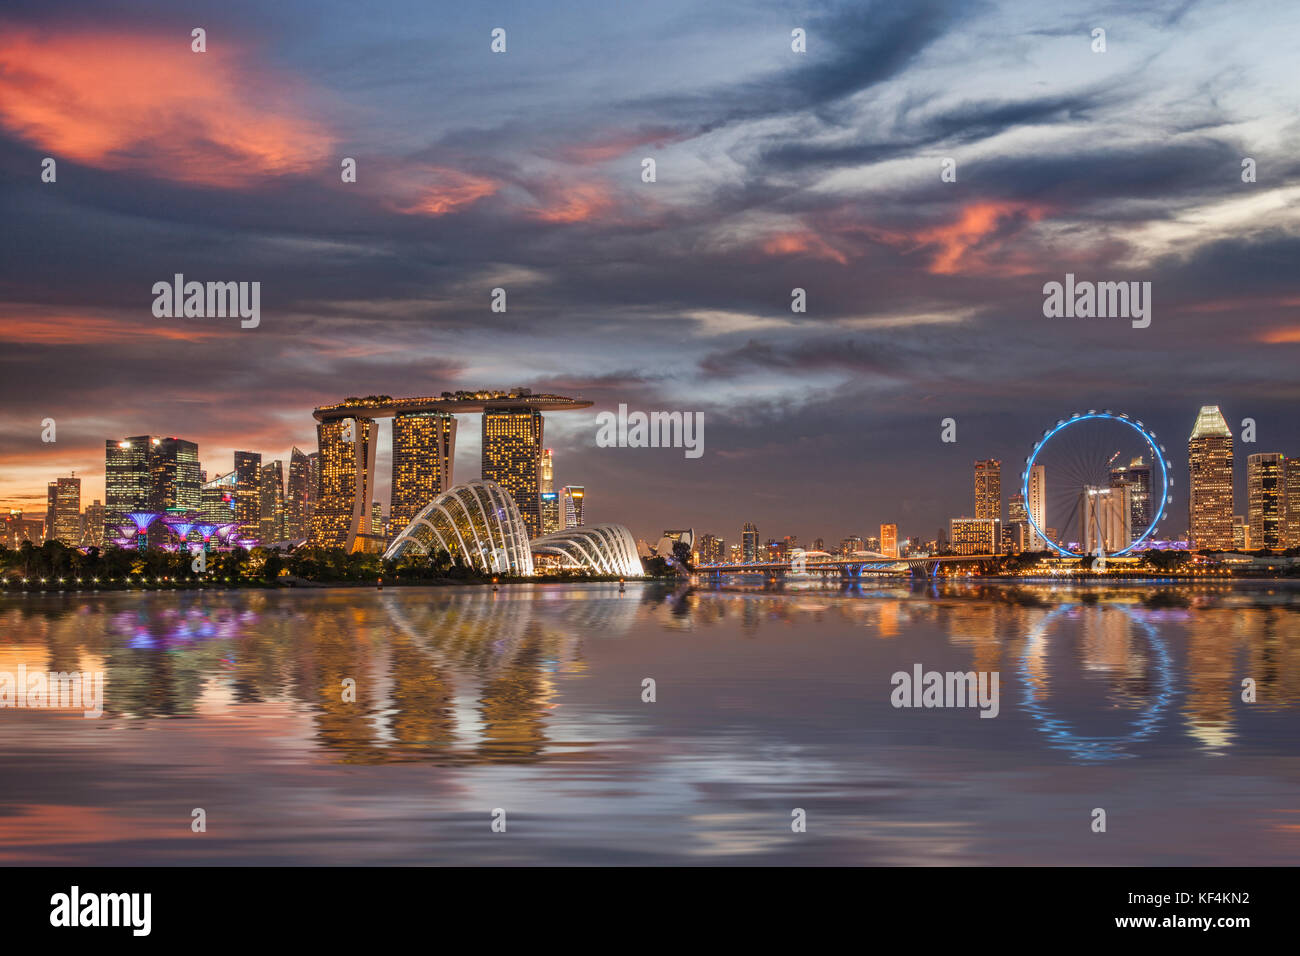 Singapore skyline reflected in Marina Bay, with Supertrees, the Cloud and Flower Domes, Marina Bay Sands, the Singapore - Stock Image